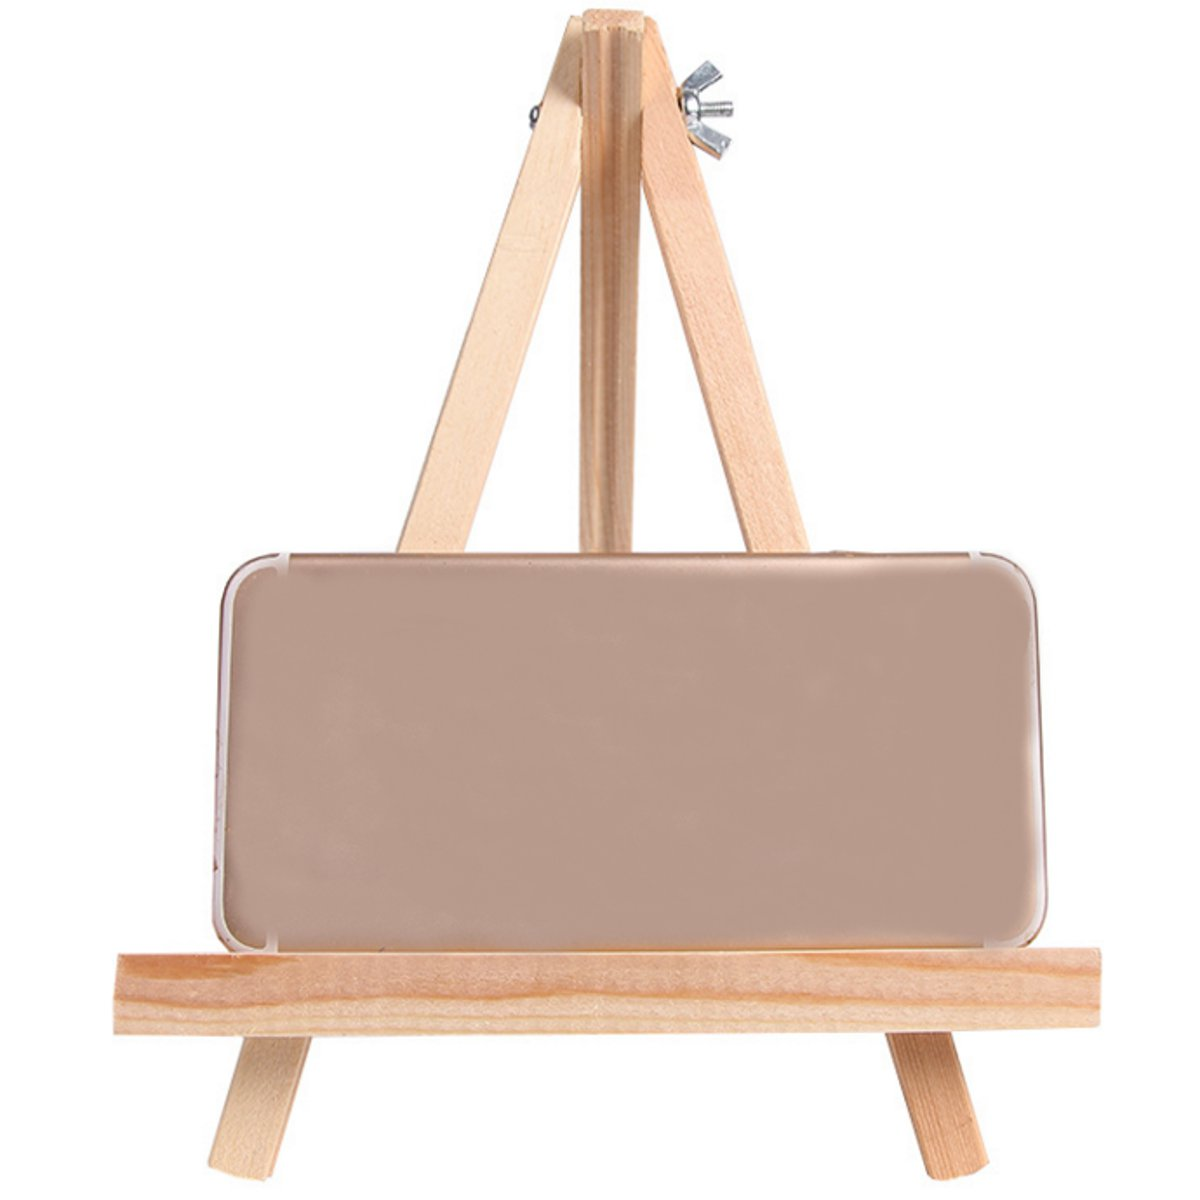 10pcs Small Wooden Timber Easels School Photo Art Painting Display Rack Stand Holder Wedding Table Card Holder Party Decoration